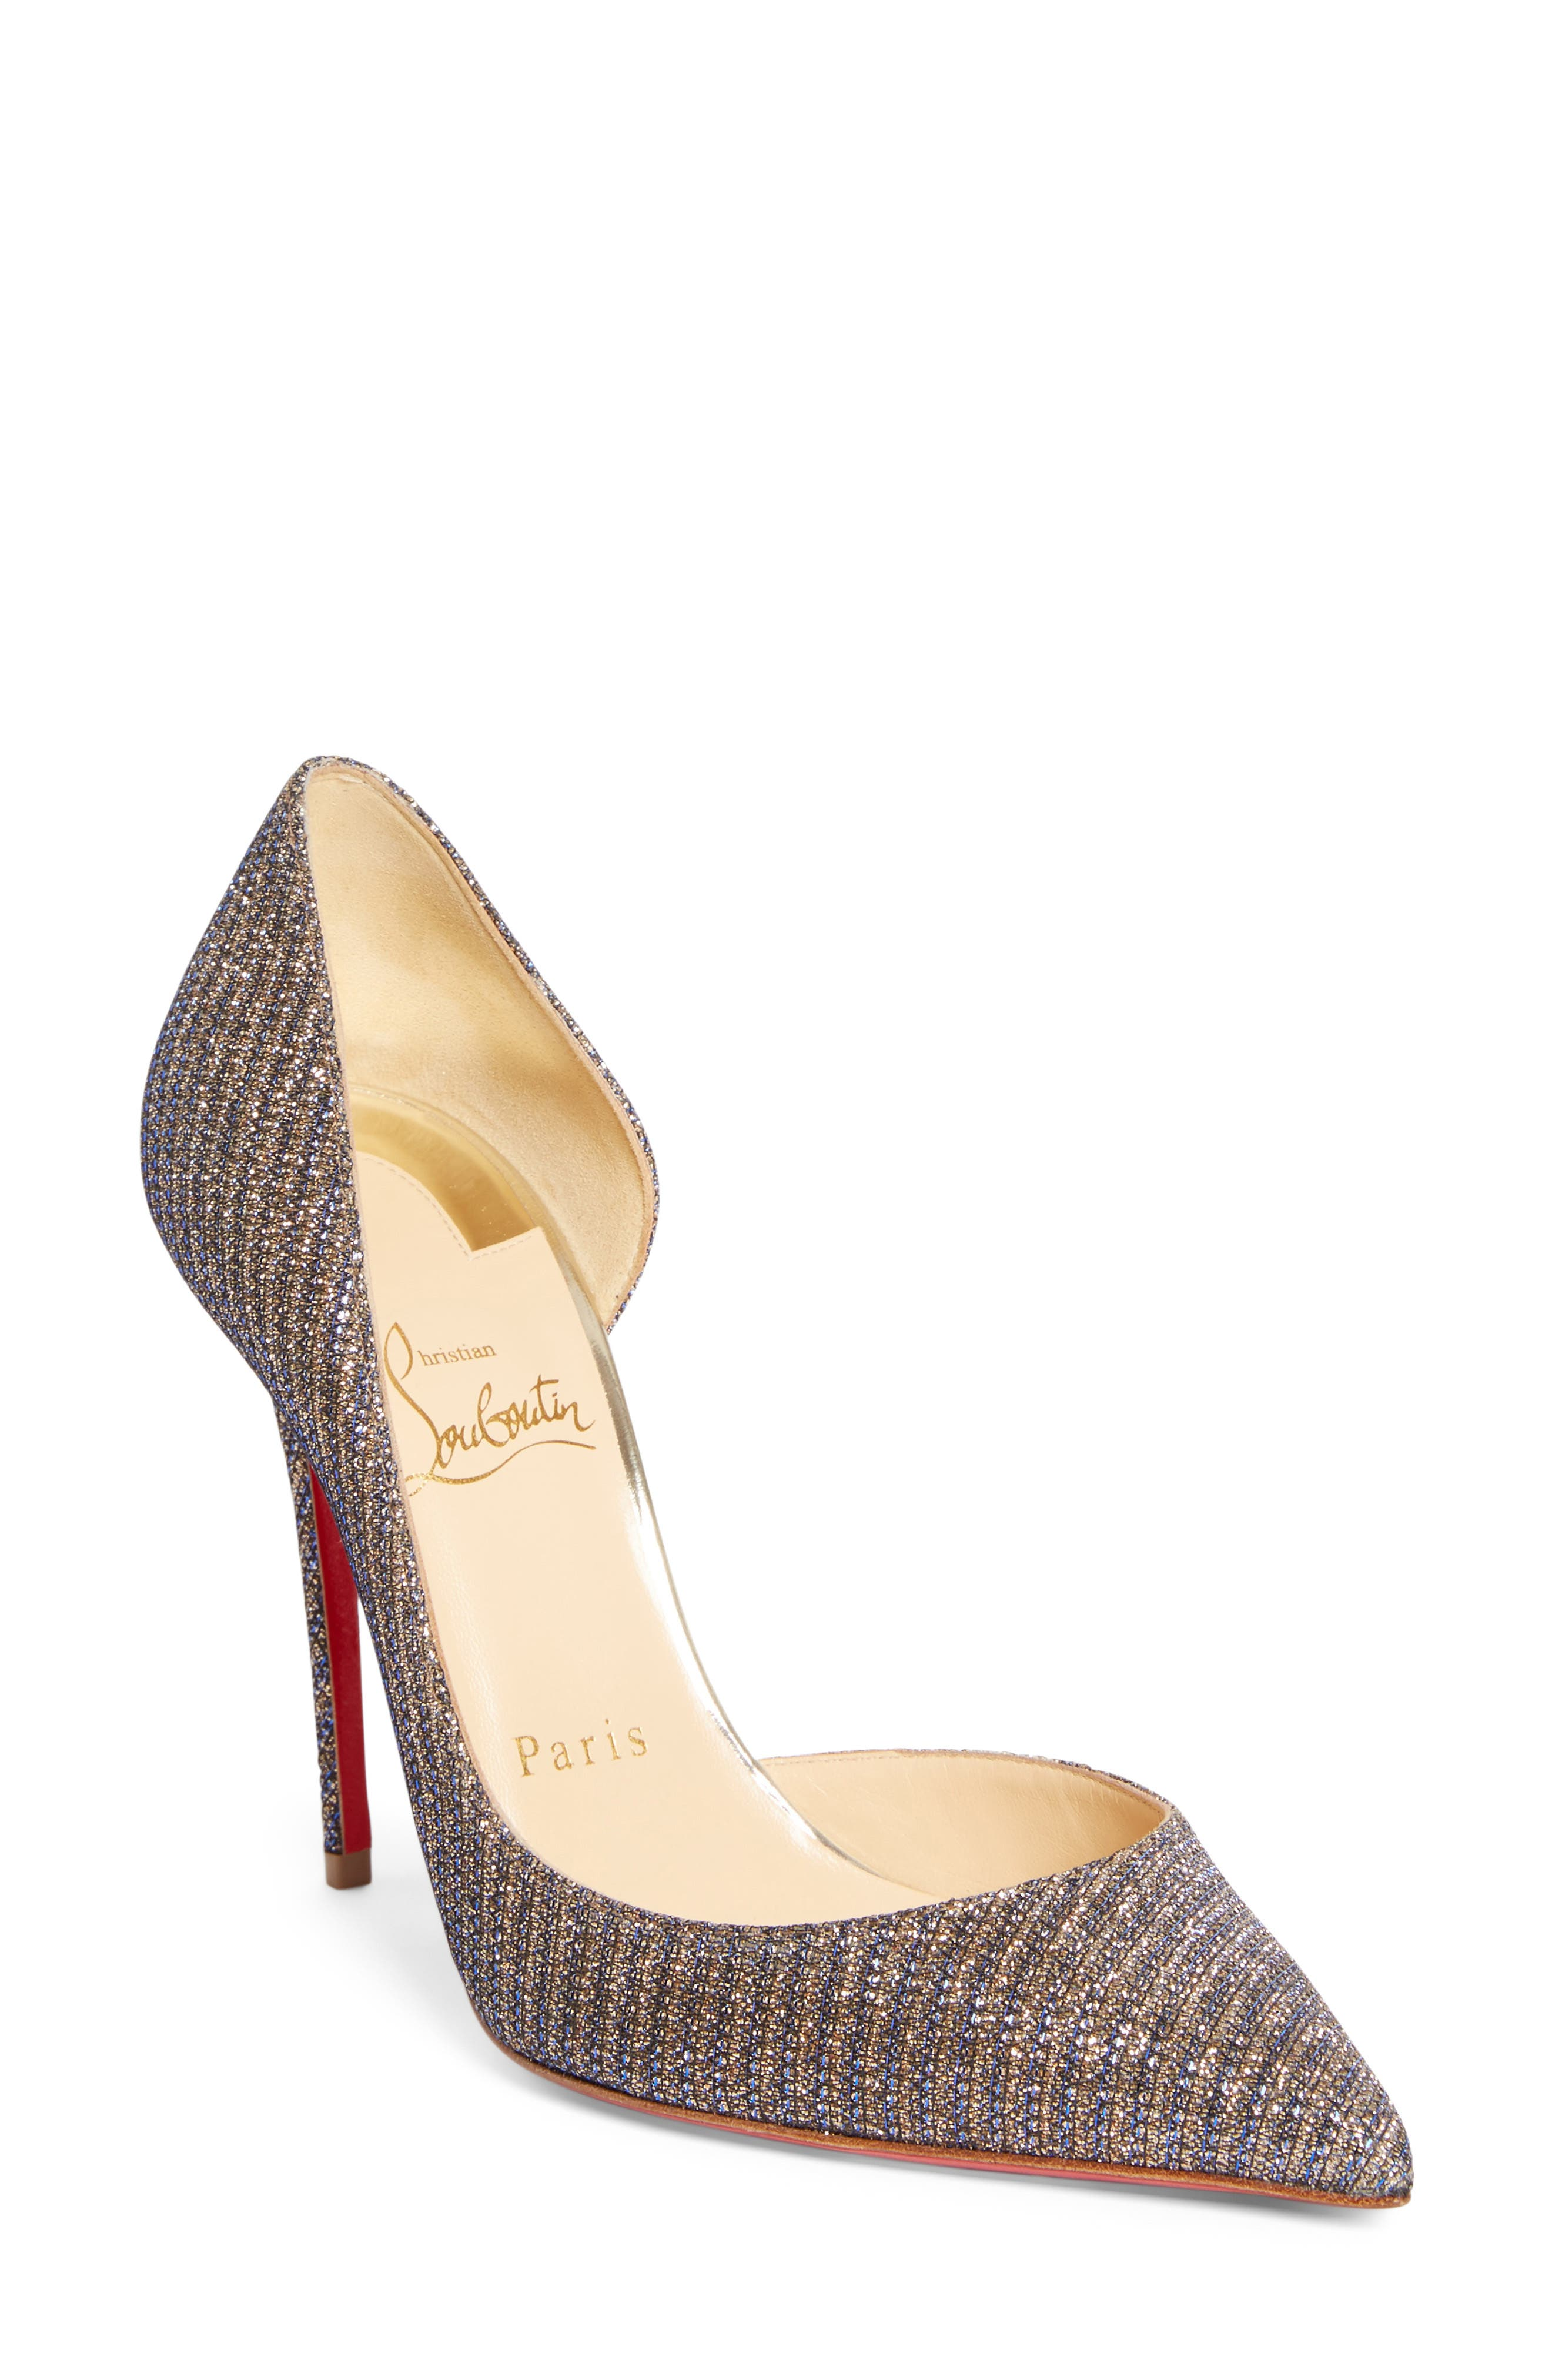 Alternate Image 1 Selected - Christian Louboutin 'Iriza' Half d'Orsay Glitter Pump